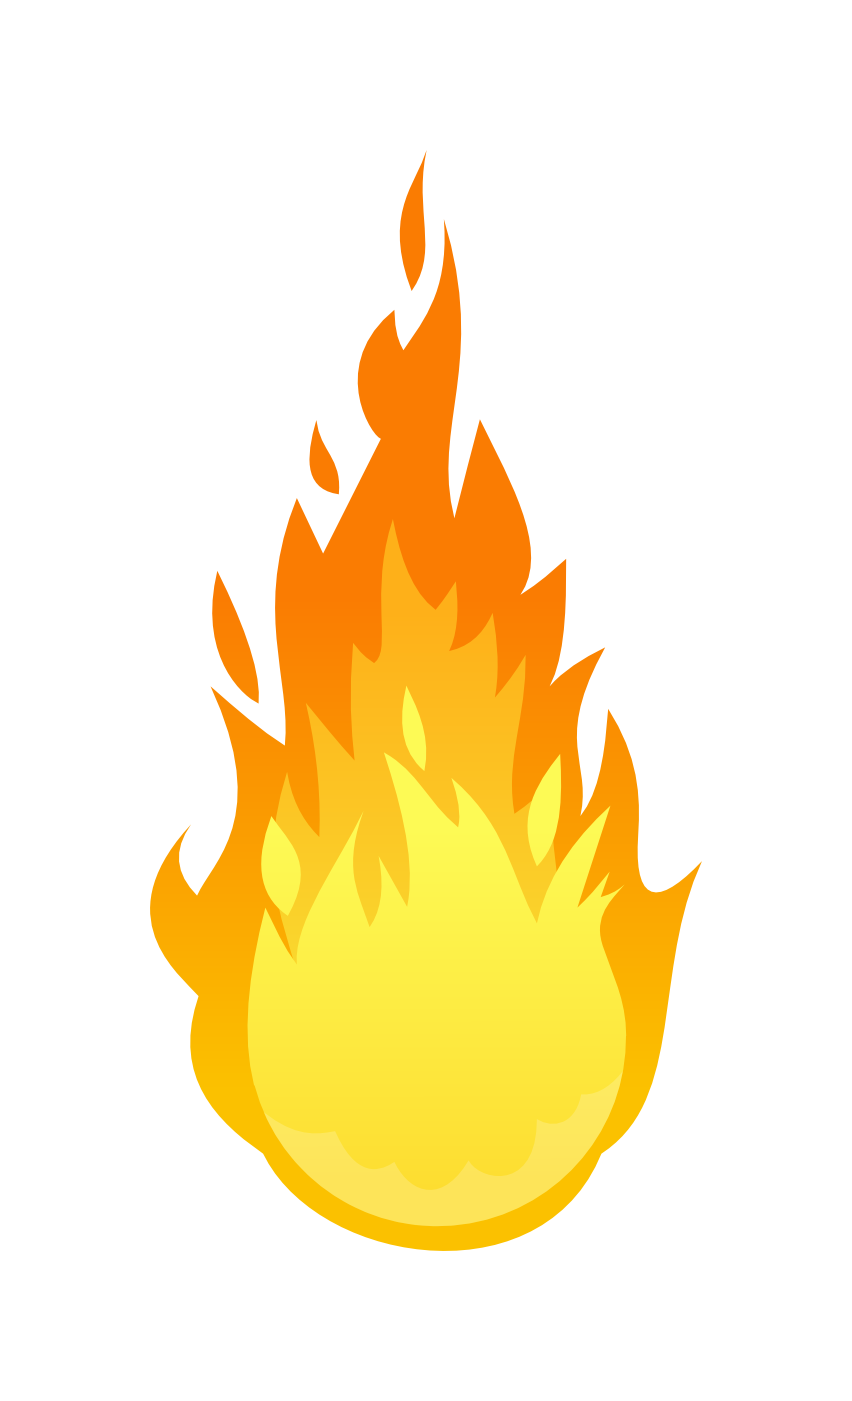 Fire Flame Png Images & Pictures  Becuo